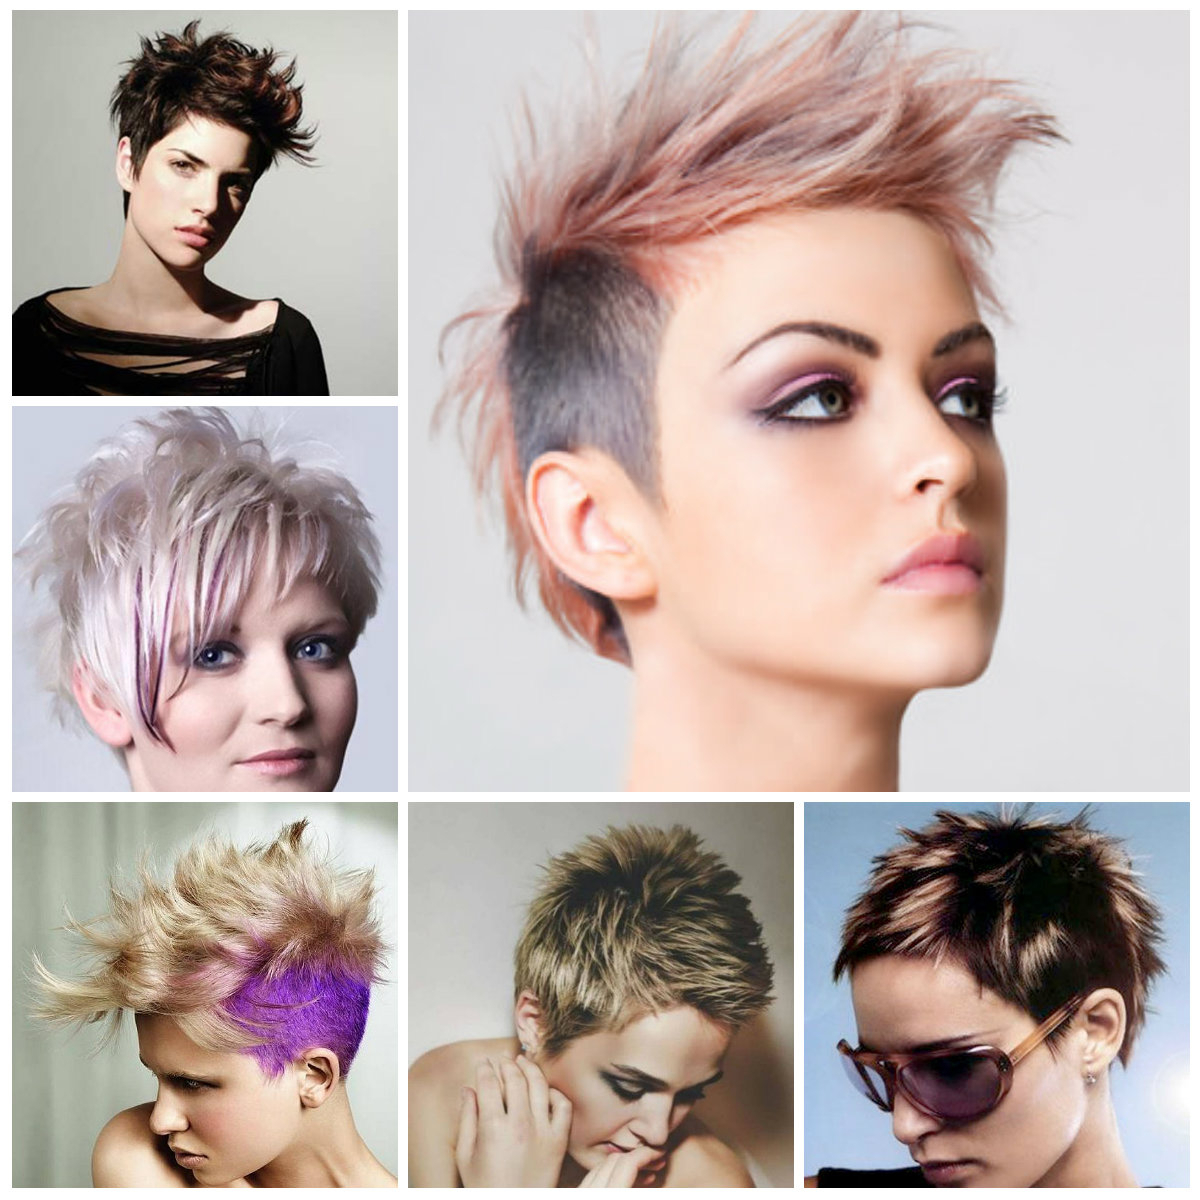 2019 Trendy Short Spiky Hairstyles For Women | Hairstyles For Women Pertaining To Trendy Short Hairstyles (View 2 of 25)